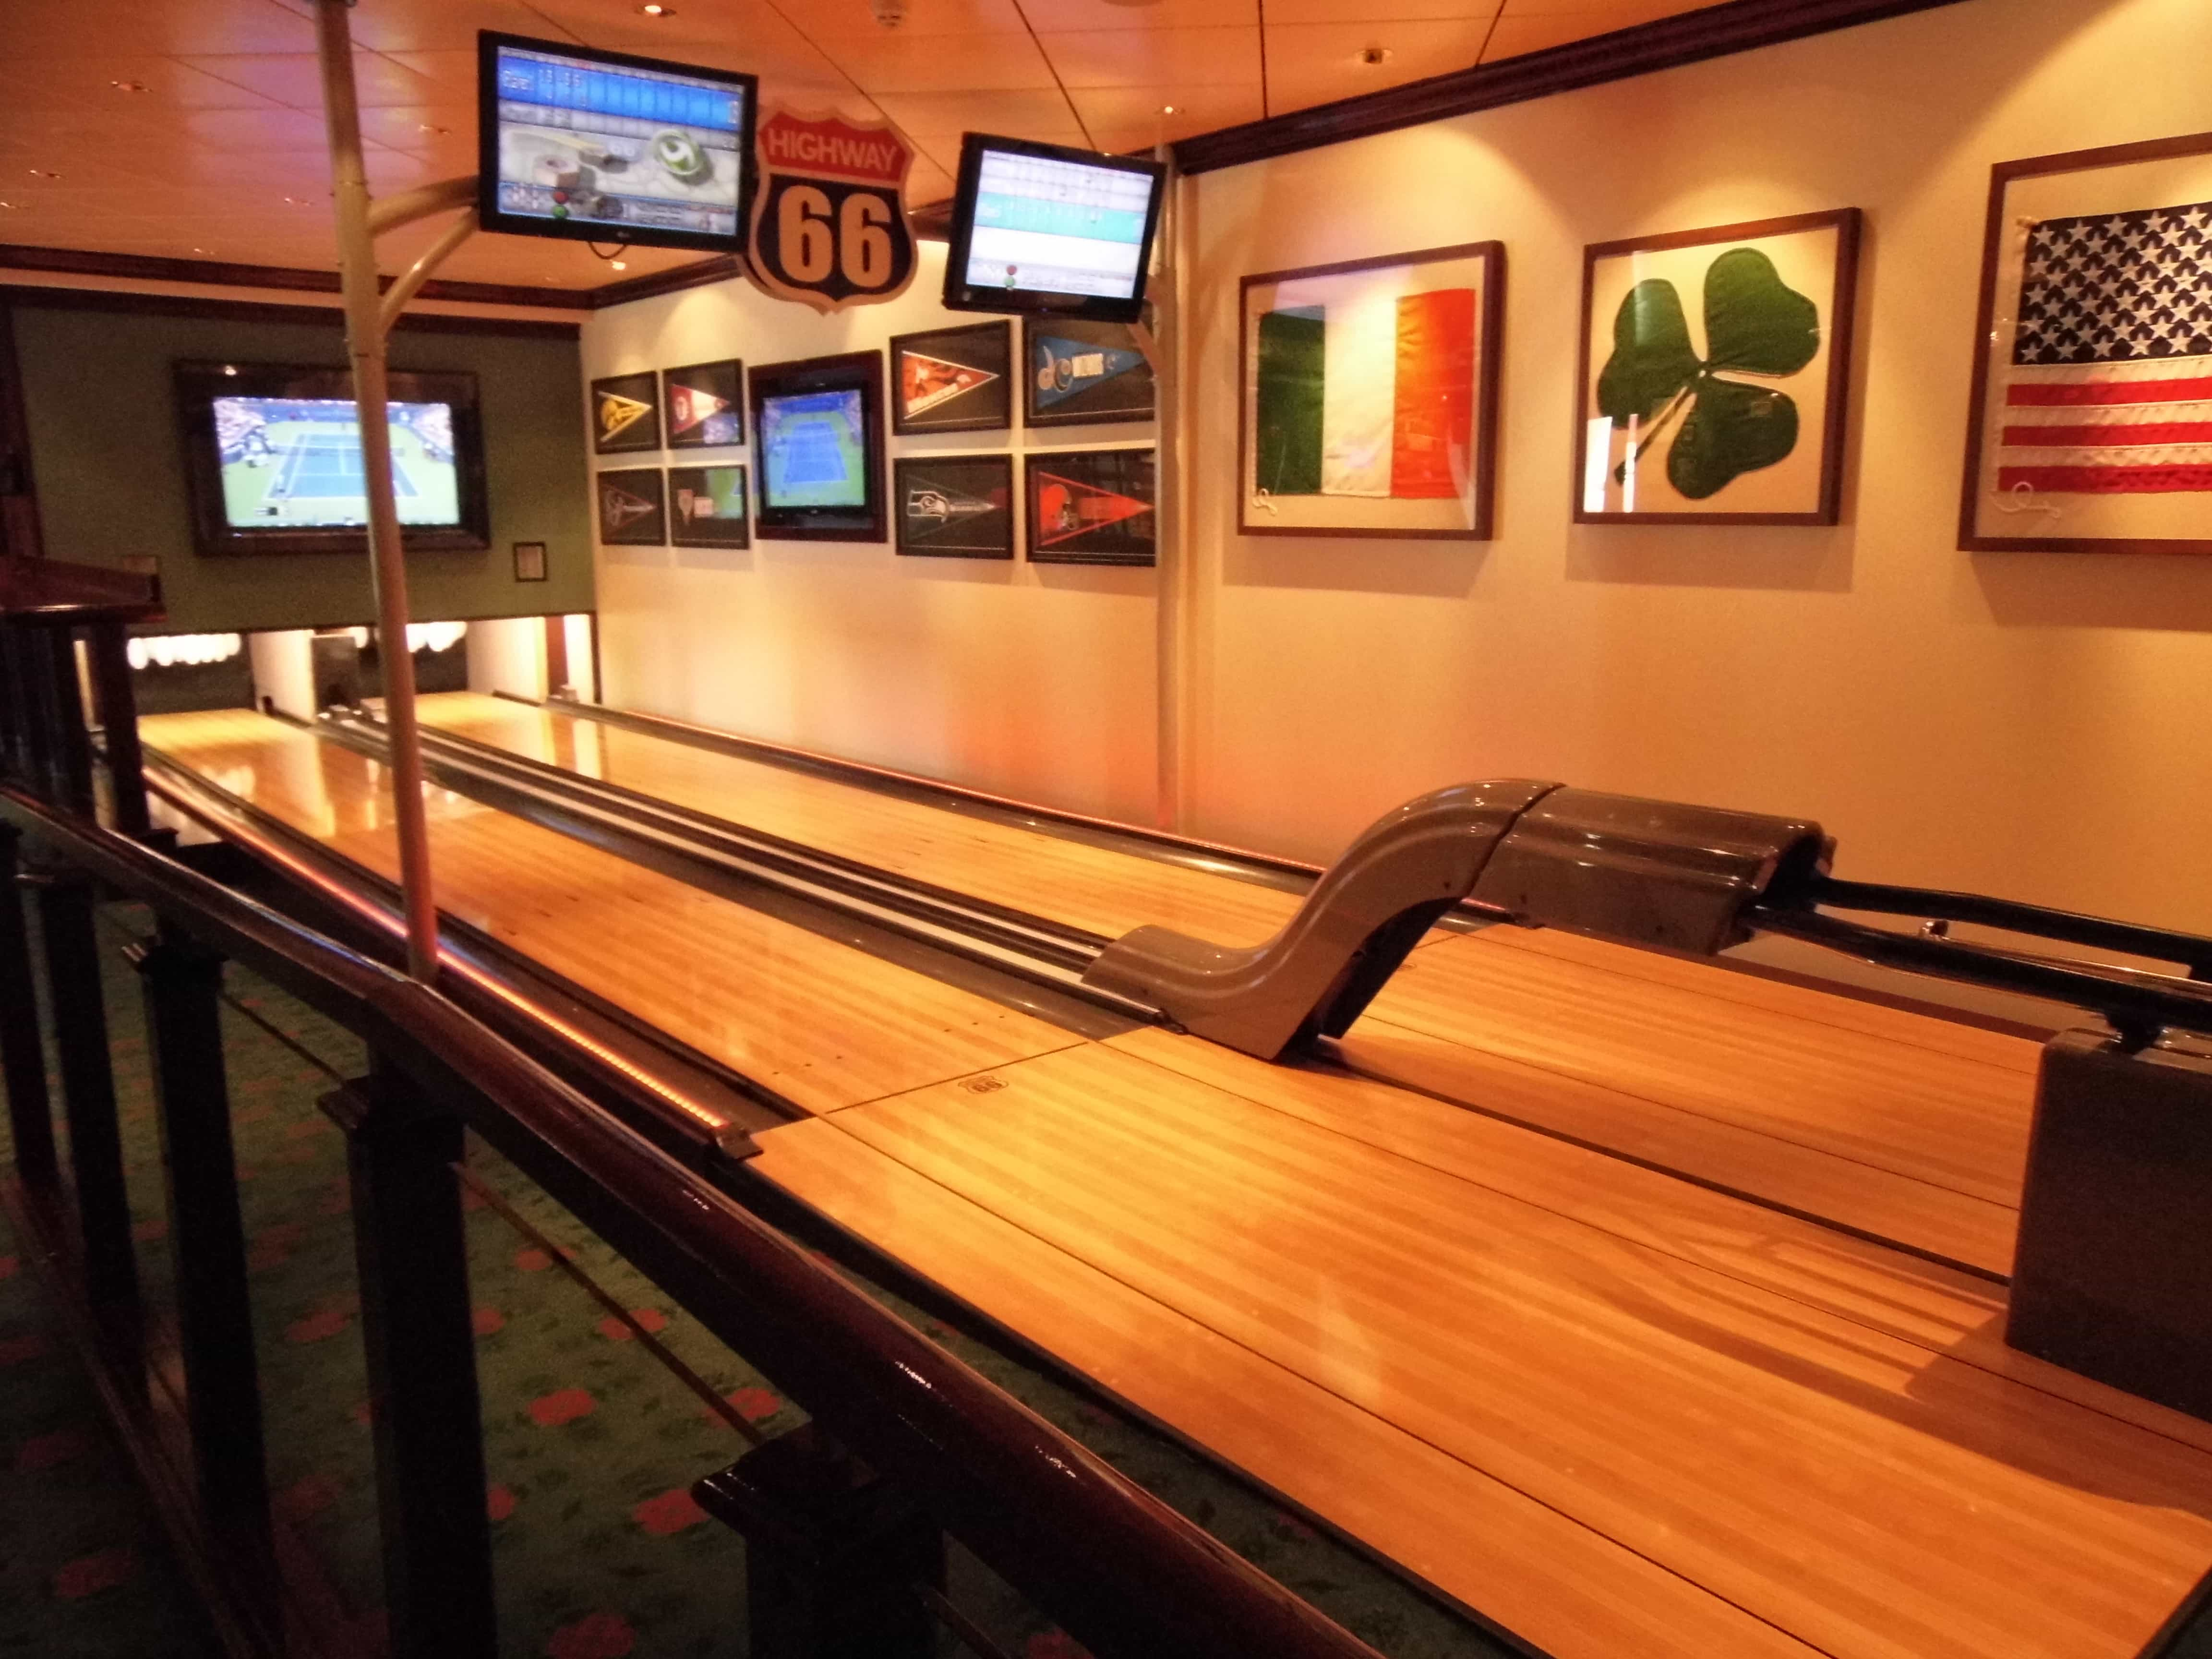 Norwegian Breakaway bowling alley